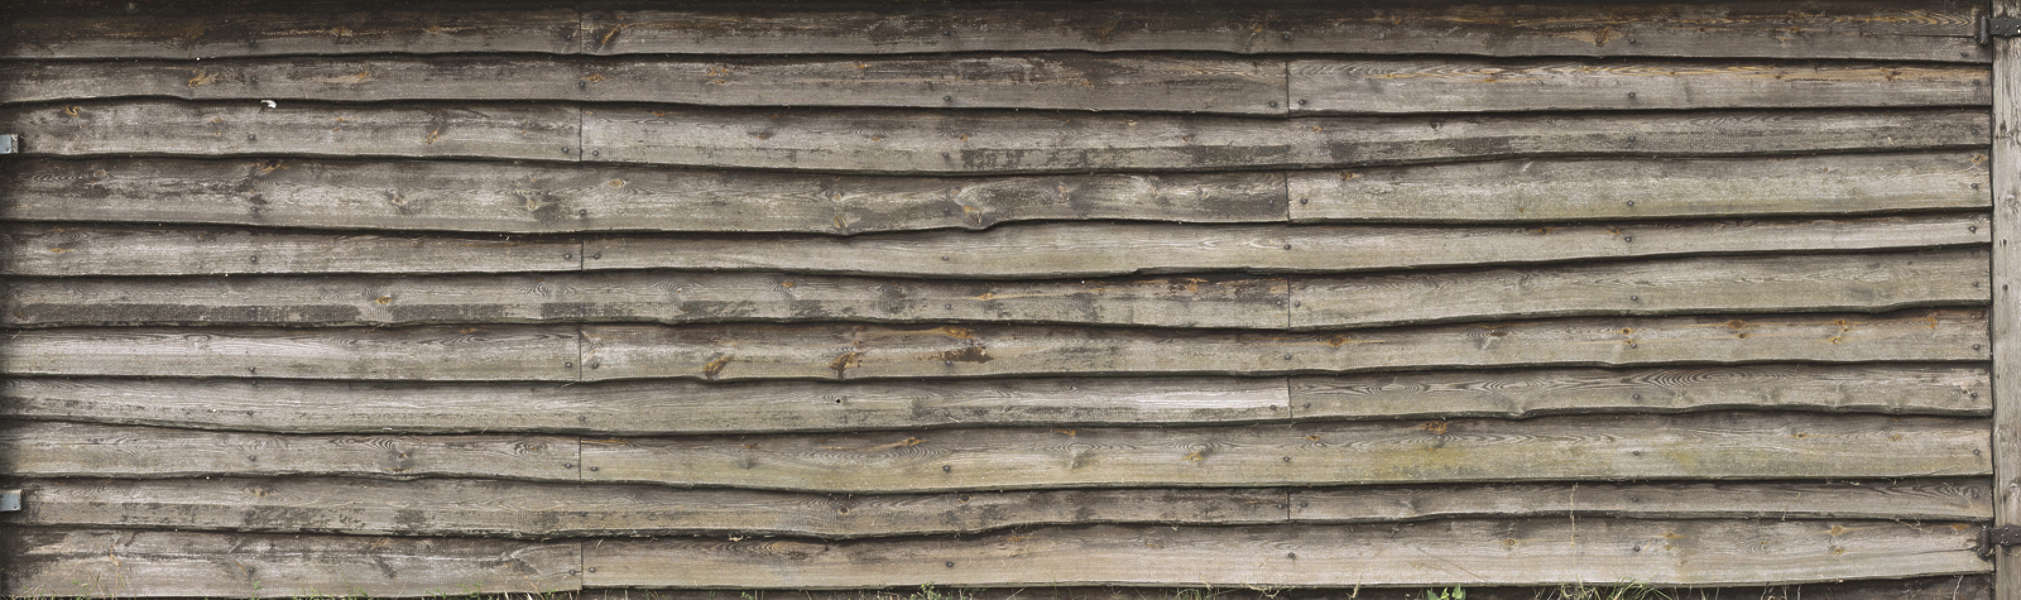 Woodplanksoverlapping0045 Free Background Texture Wood